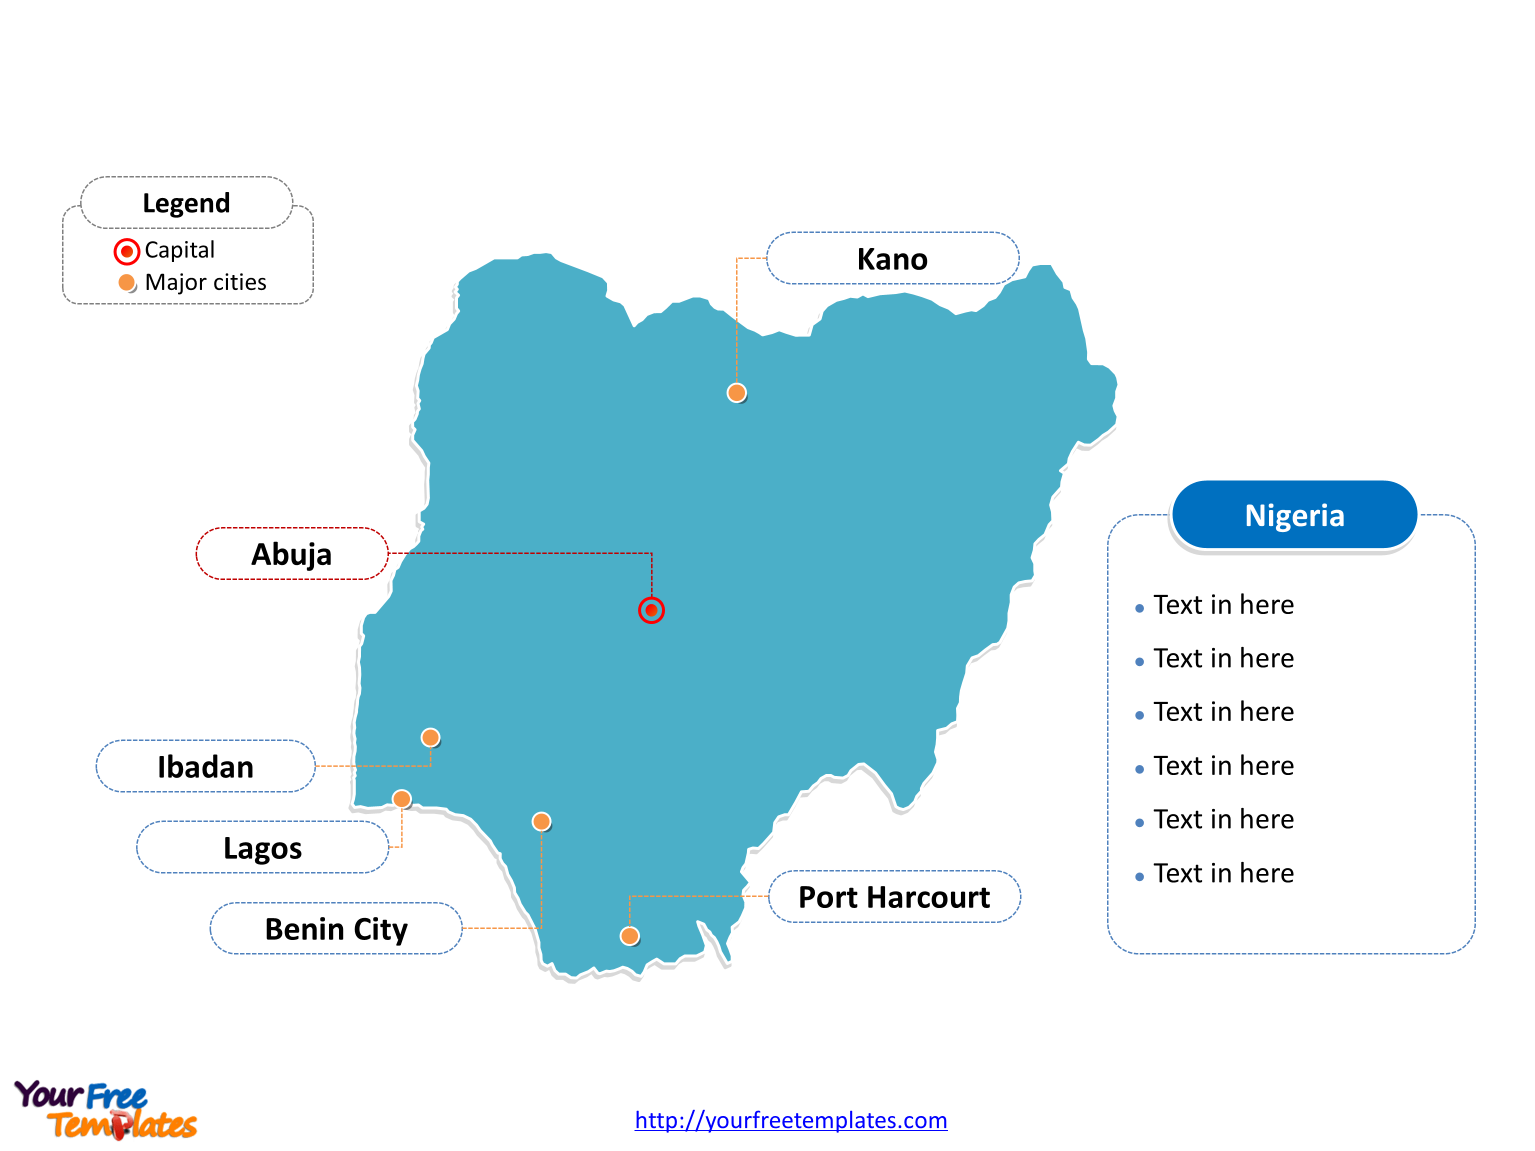 Nigeria Editable map labeled with cities